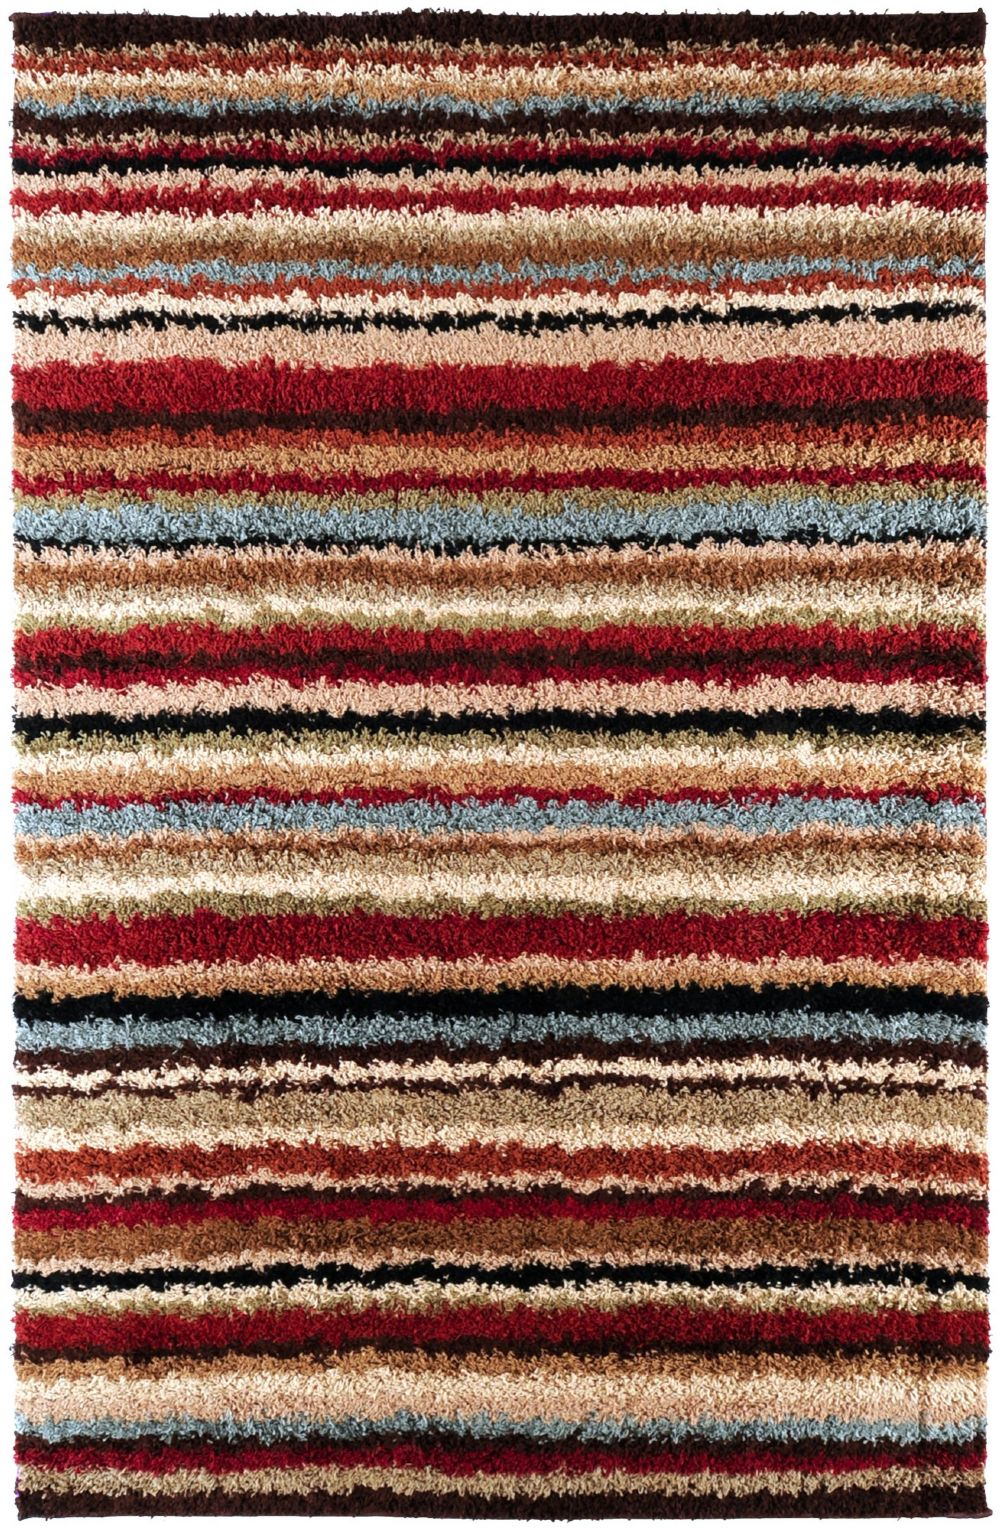 surya concepts shag area rug collection